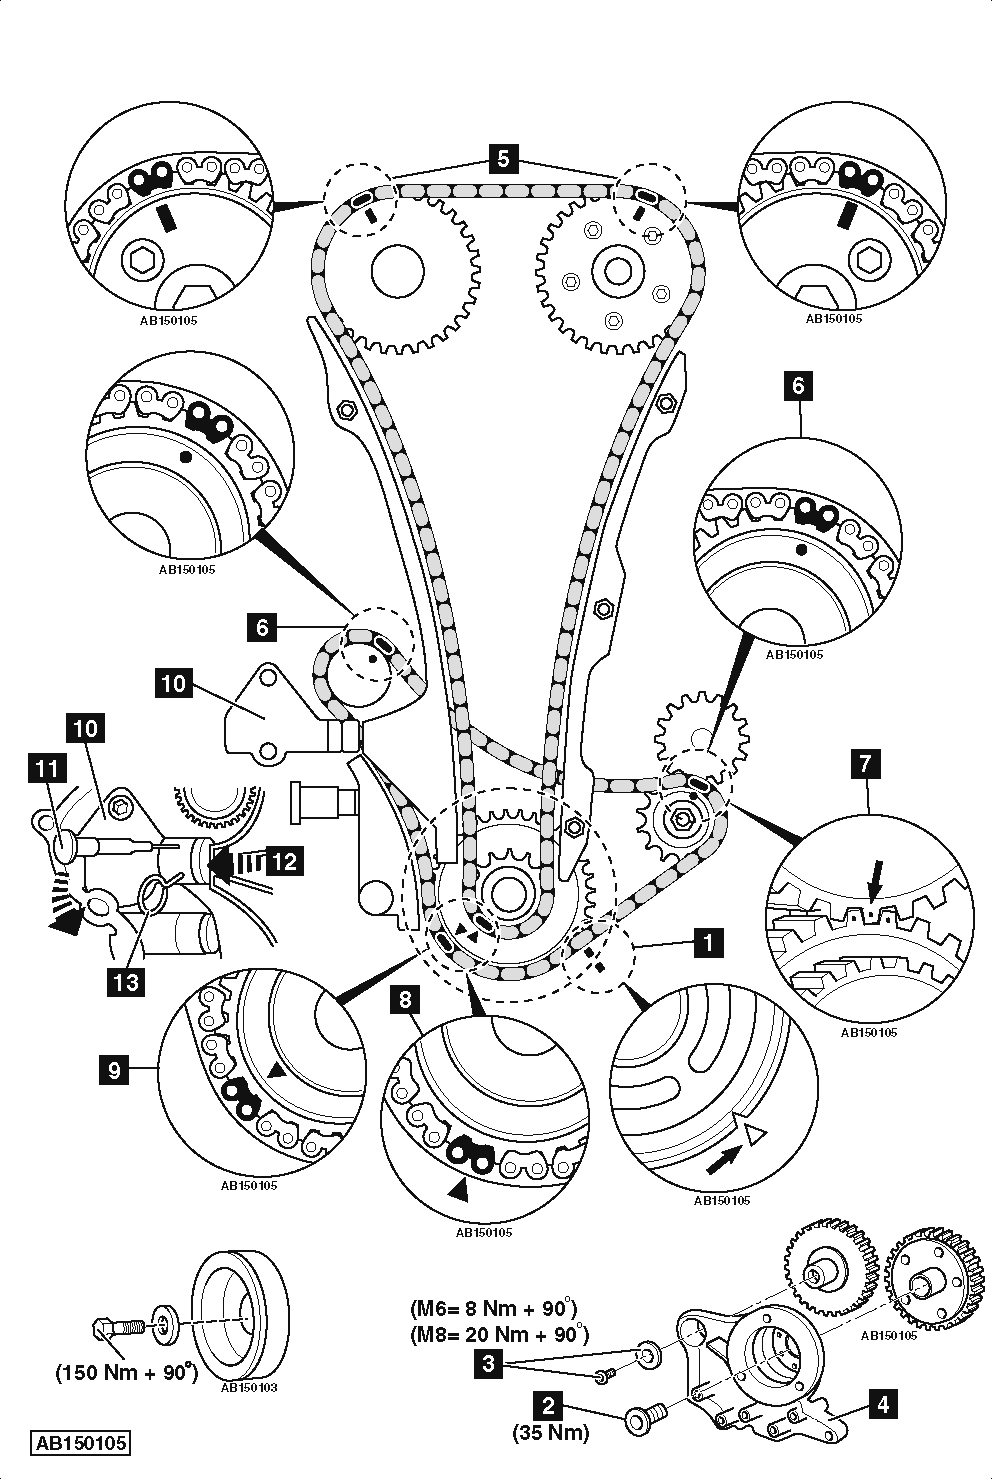 Service manual [How To Set Timing Chain On A 2009 Aston